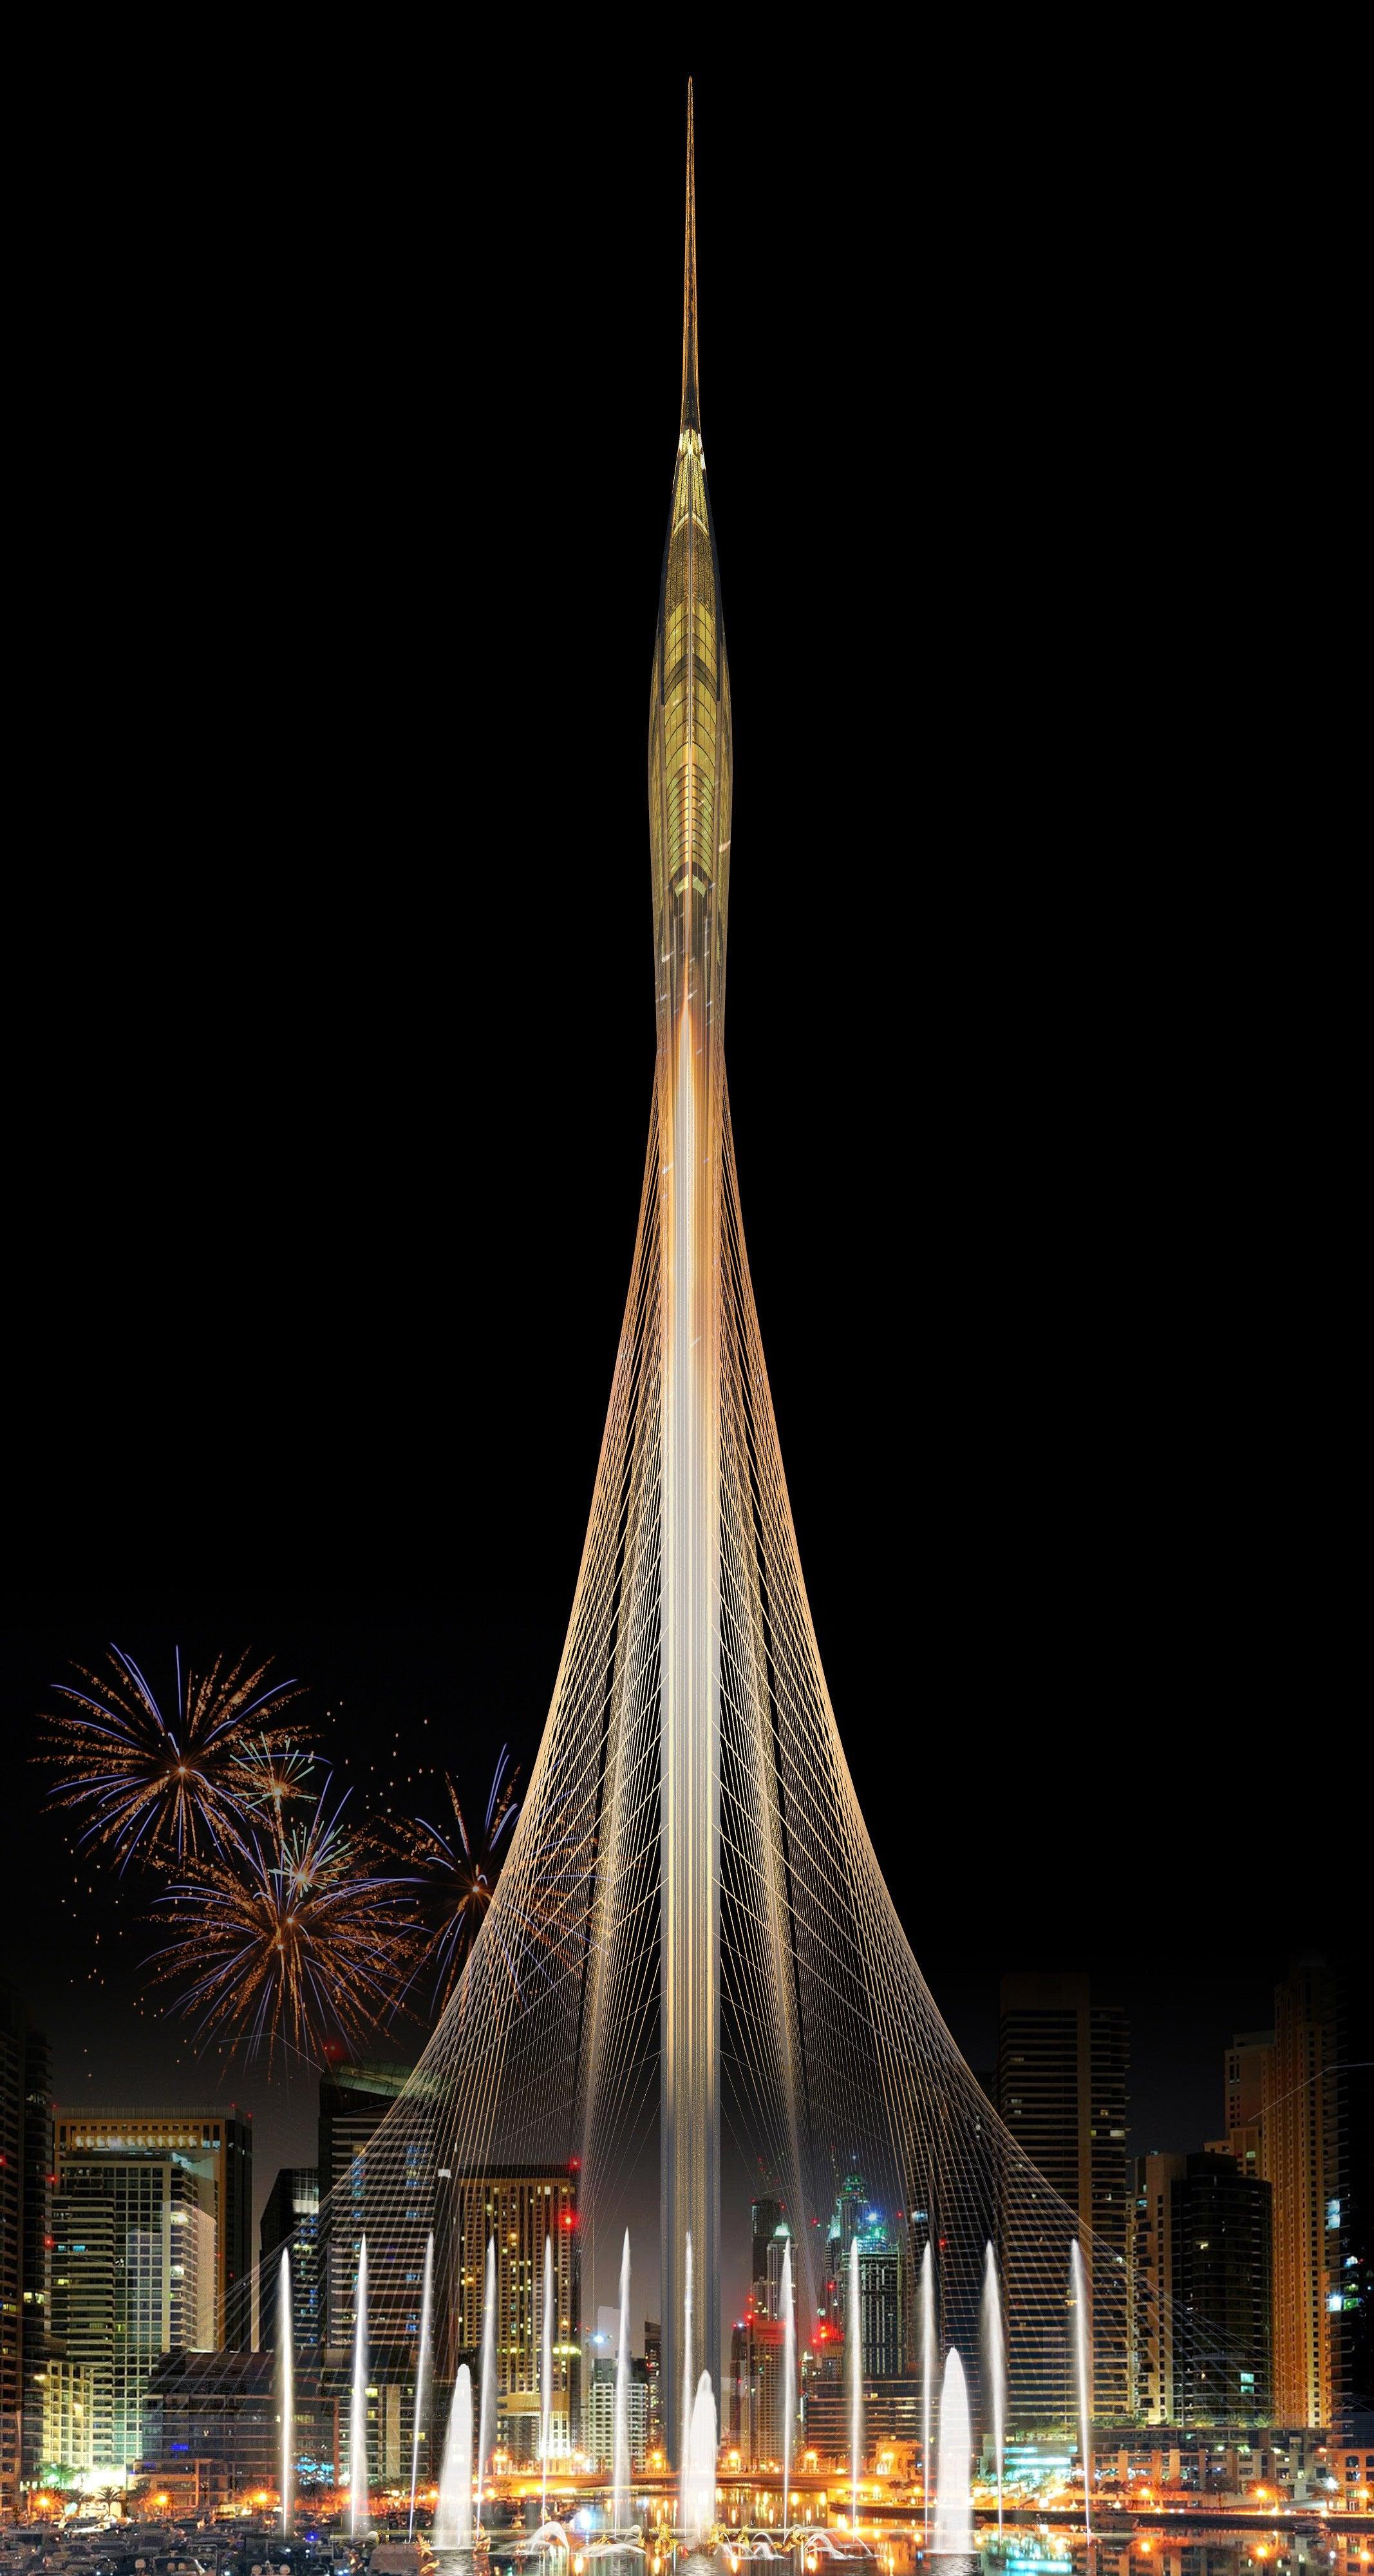 How Long Before Dubai's New Observation Tower Is Engulfed in Flames?